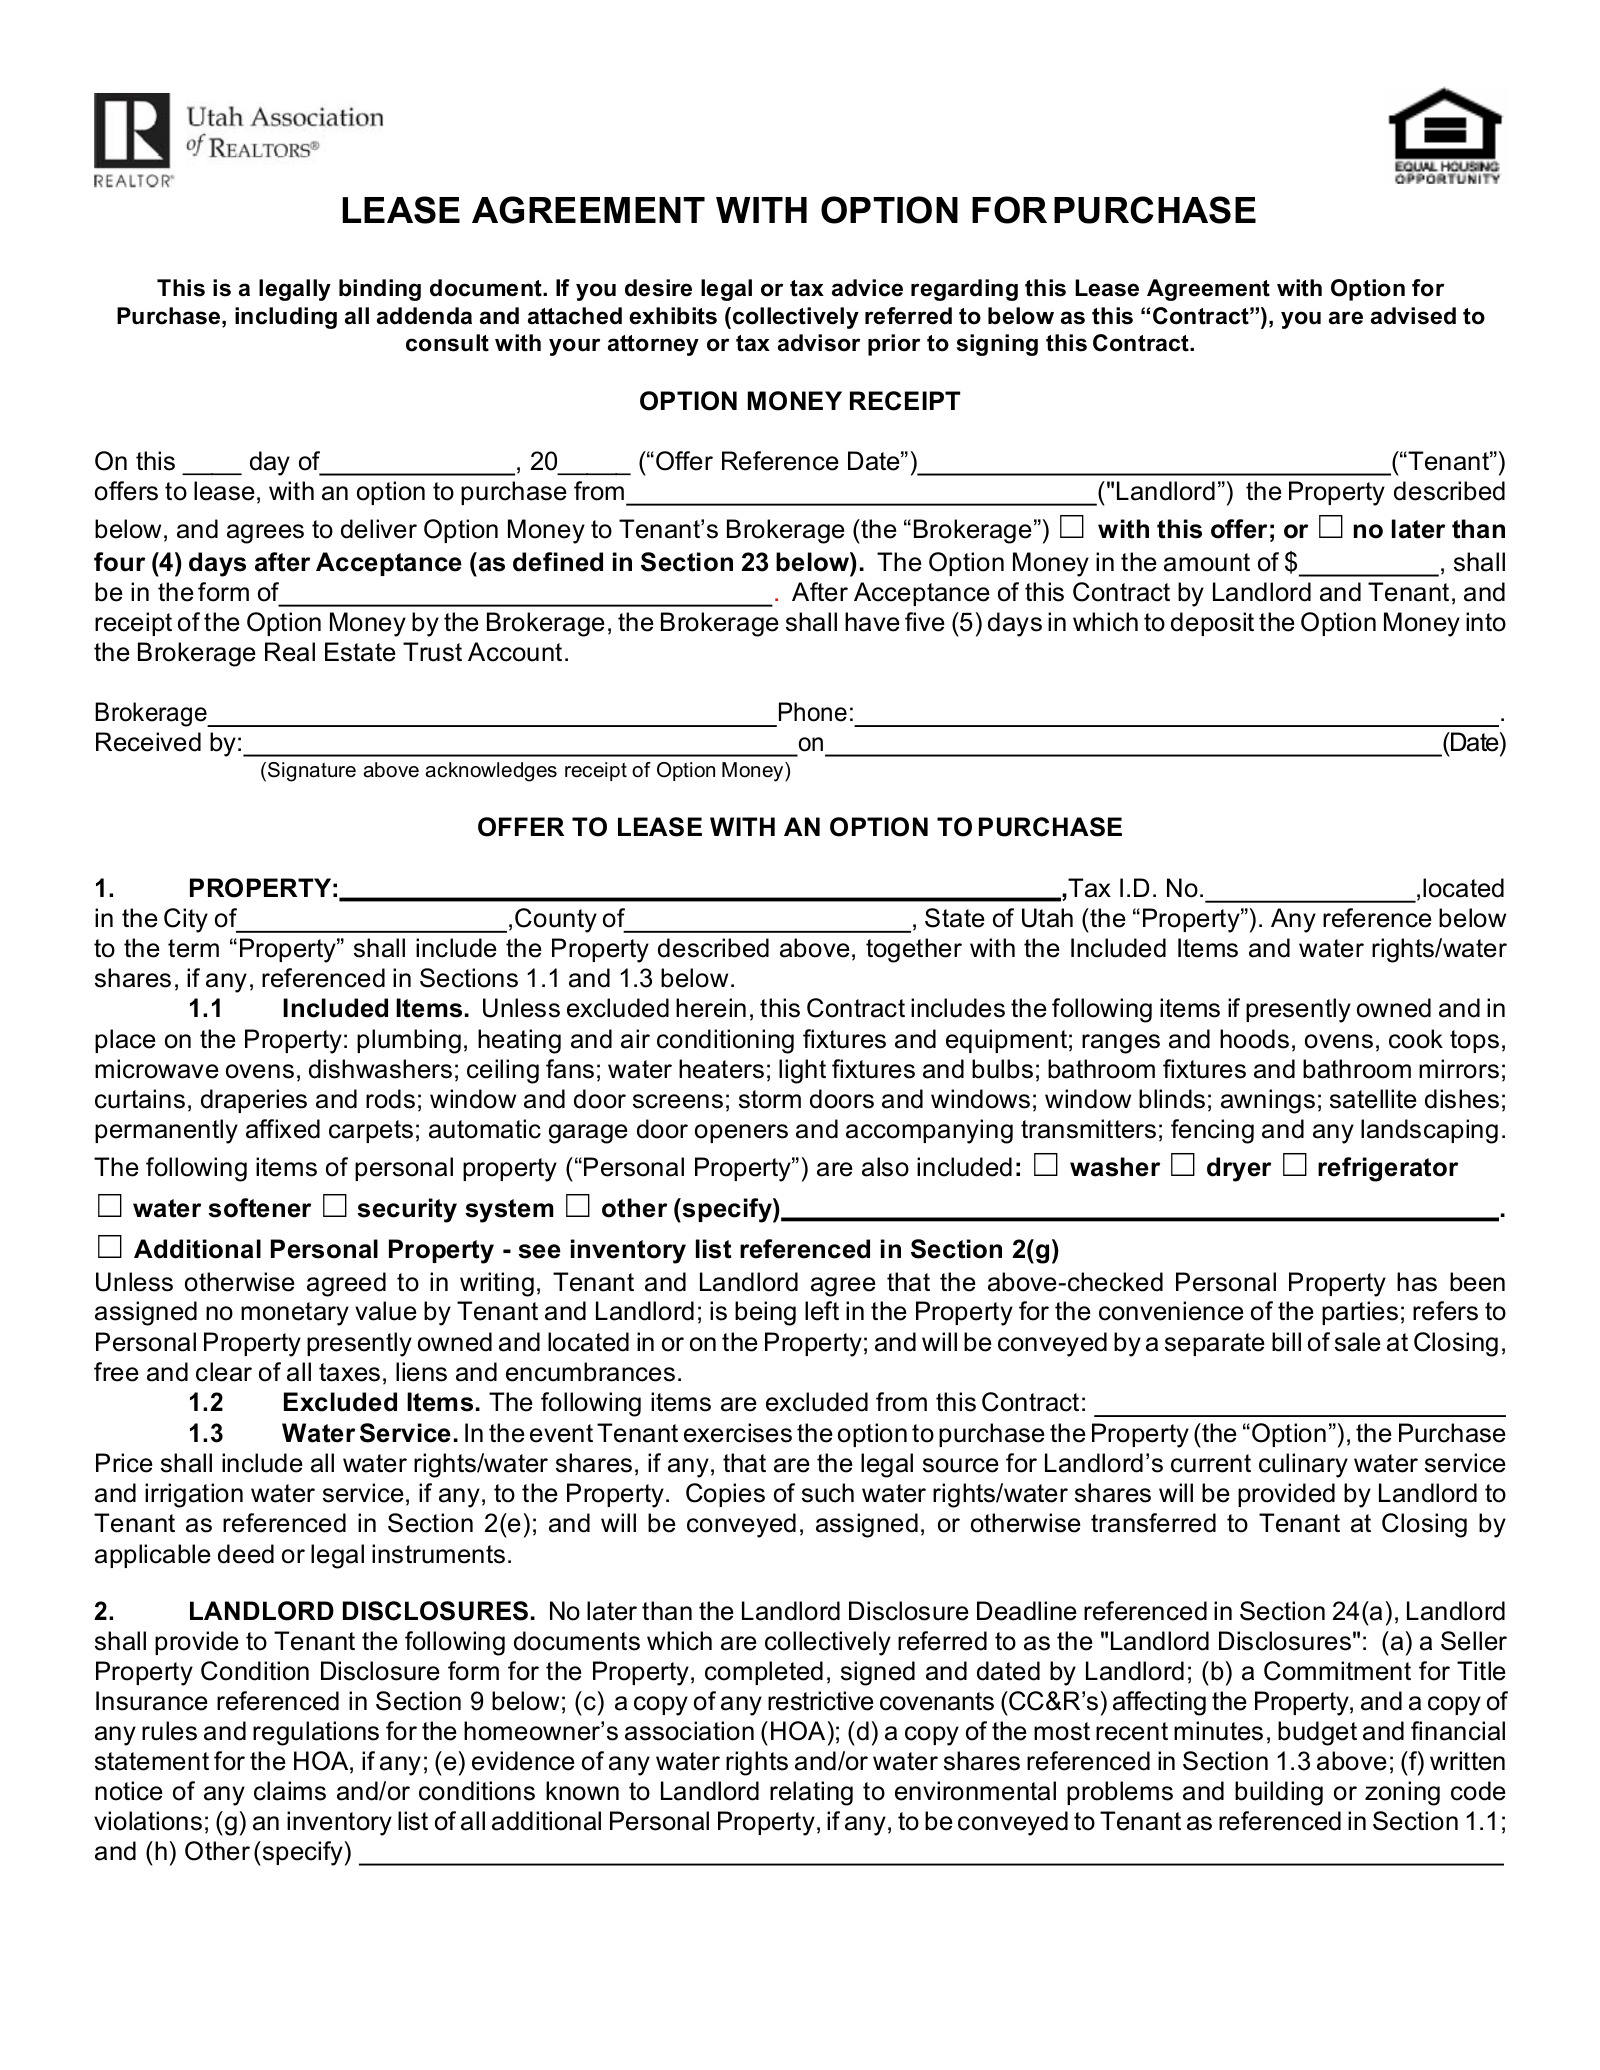 Free Utah Lease Agreement With Option To Purchase Form